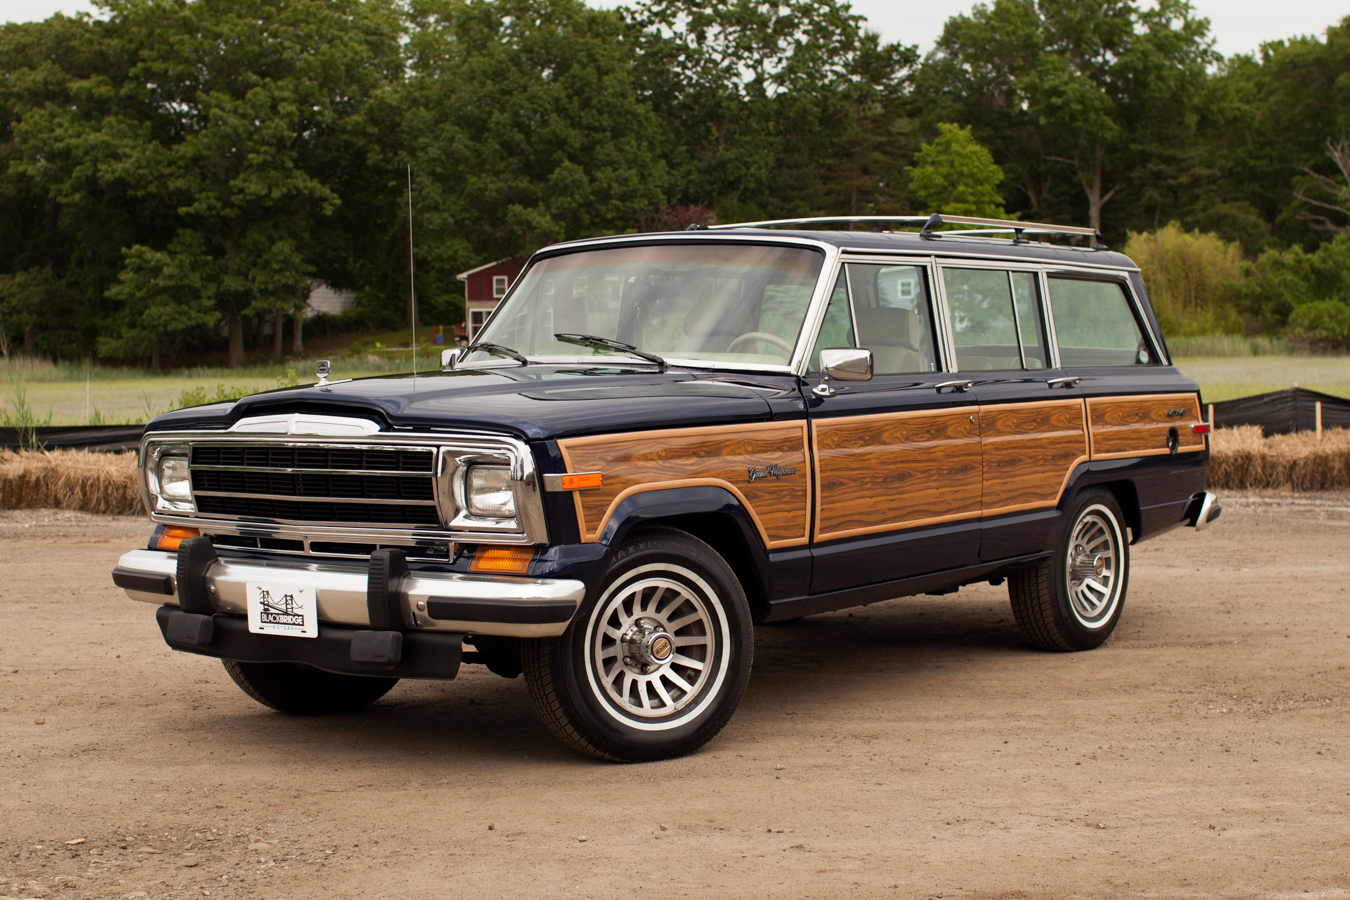 hight resolution of restored 1991 jeep grand wagoneer for sale on bat auctions sold for 41 000 on july 7 2017 lot 4 910 bring a trailer